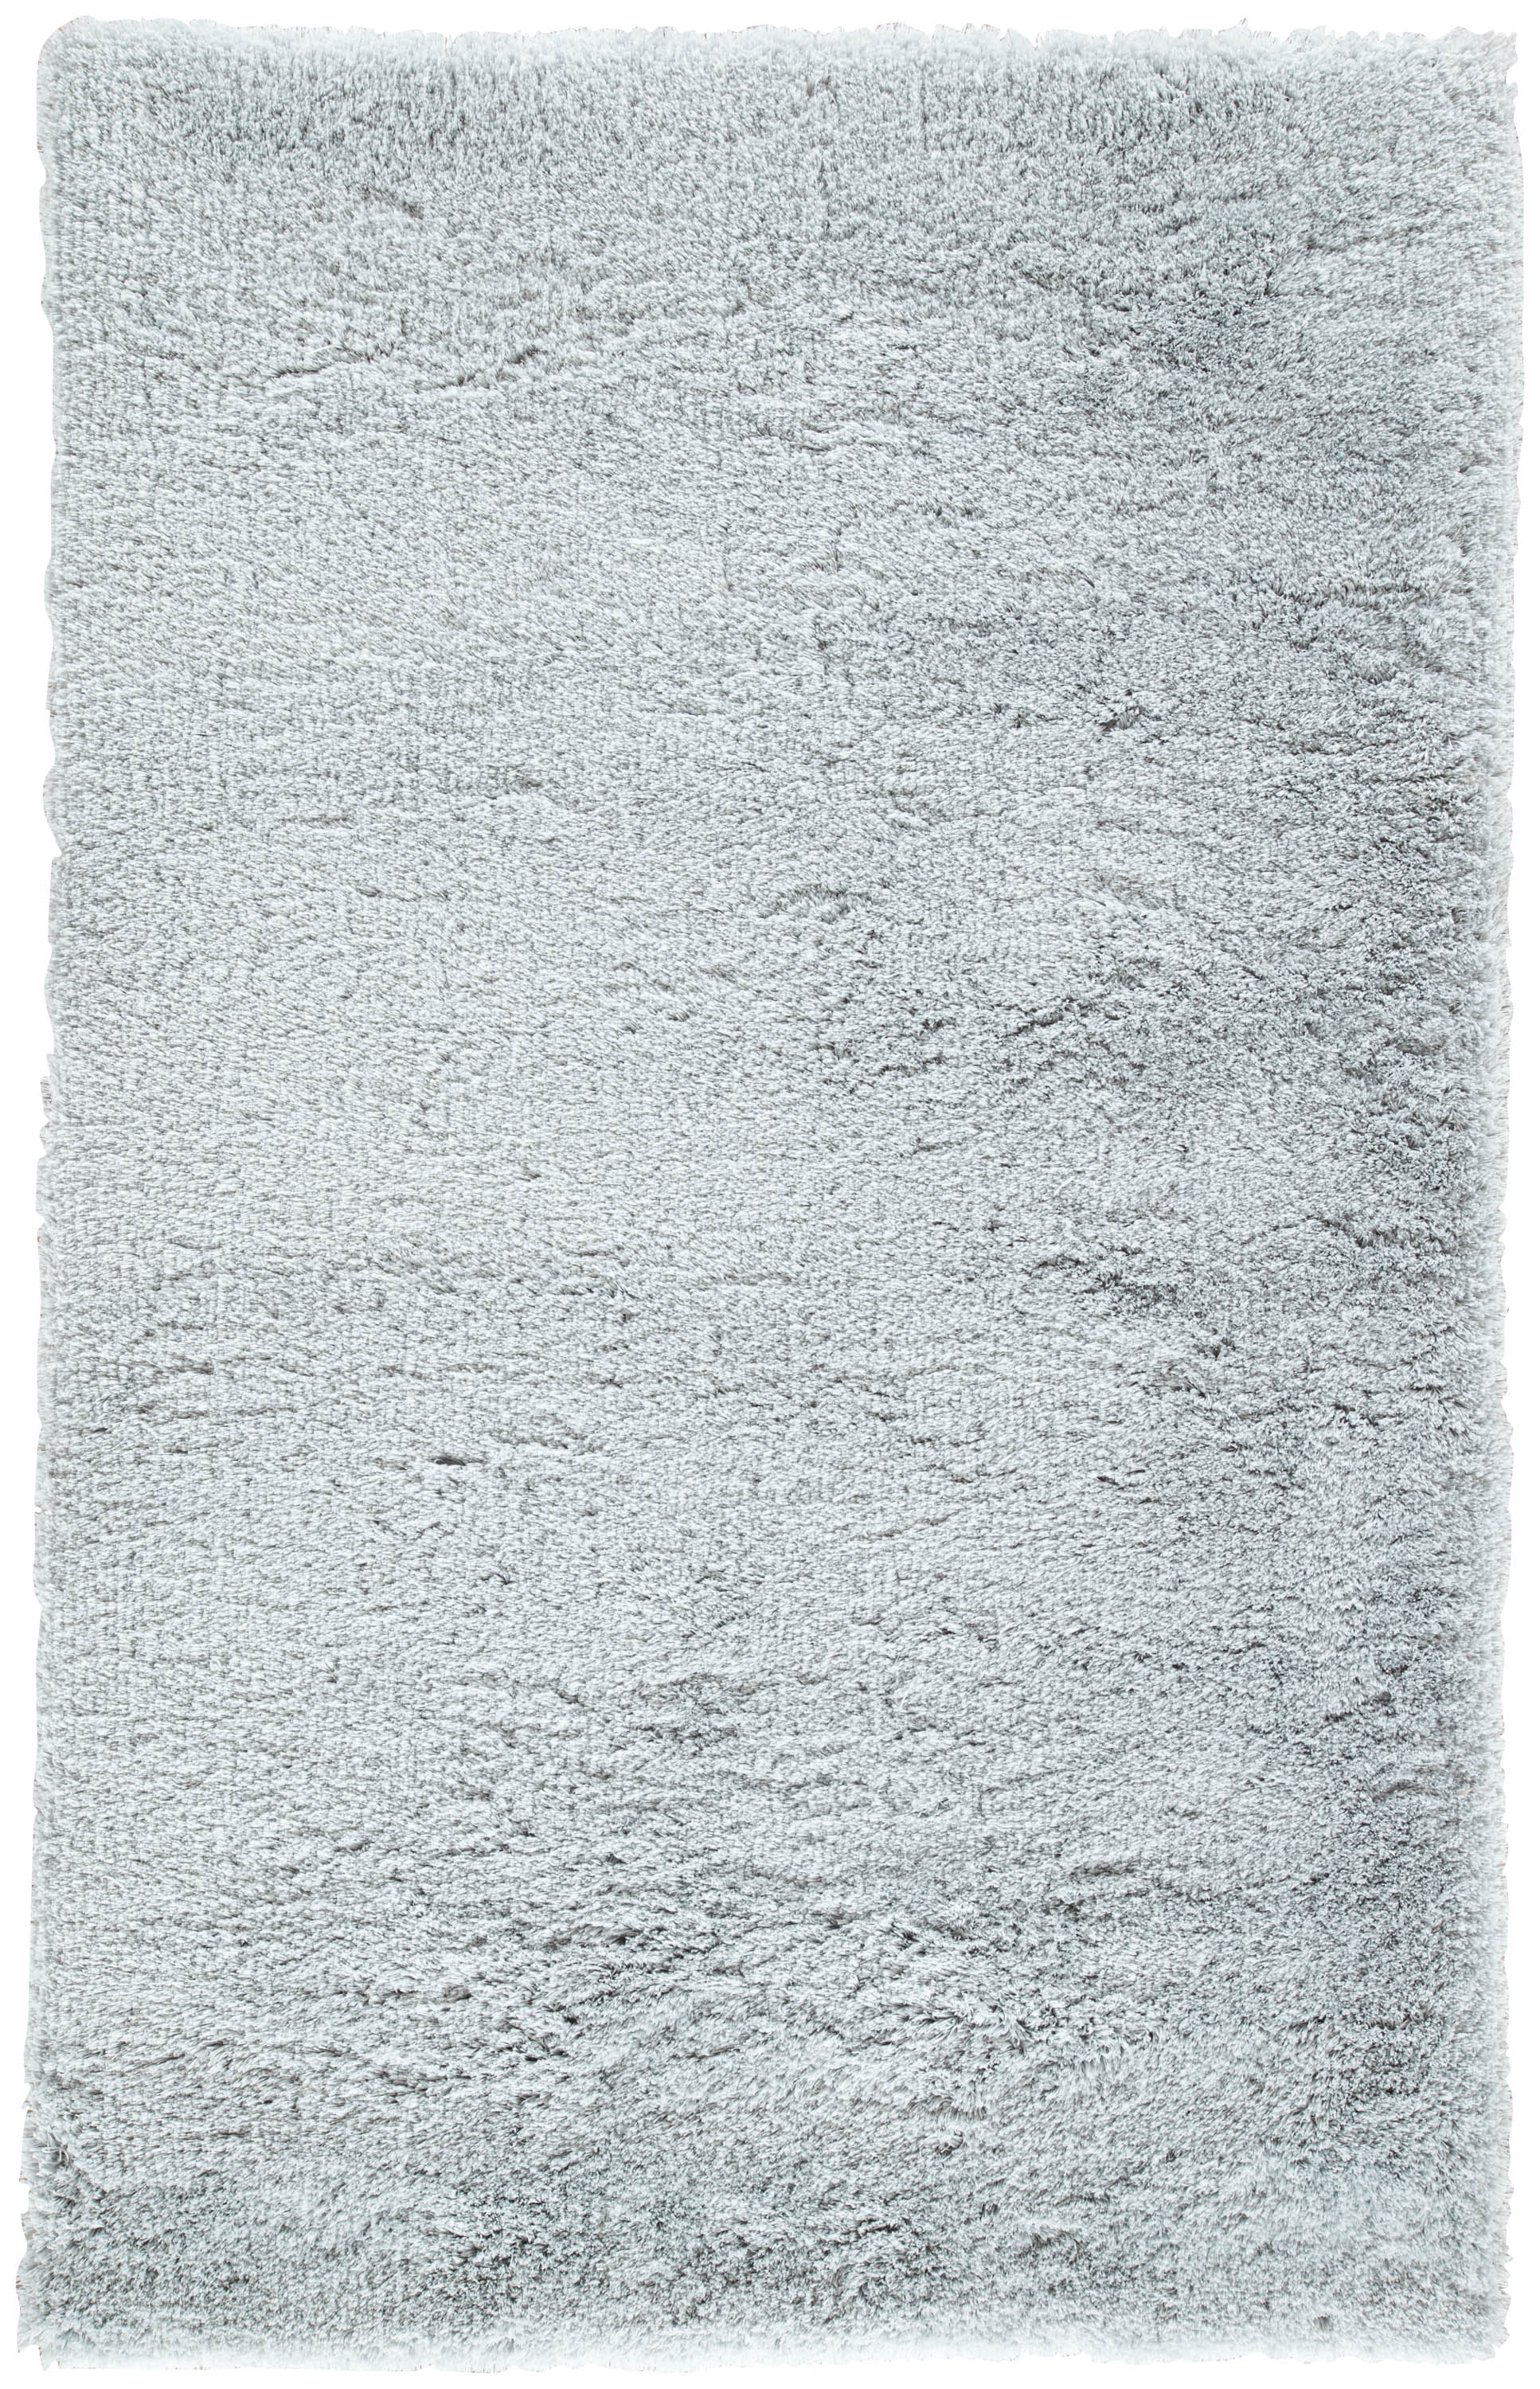 Rectangle Gray Solid Shag Synthetics Shag recommended for Bedroom, Bathroom, Dining Room, Office, Hallway, Living Room